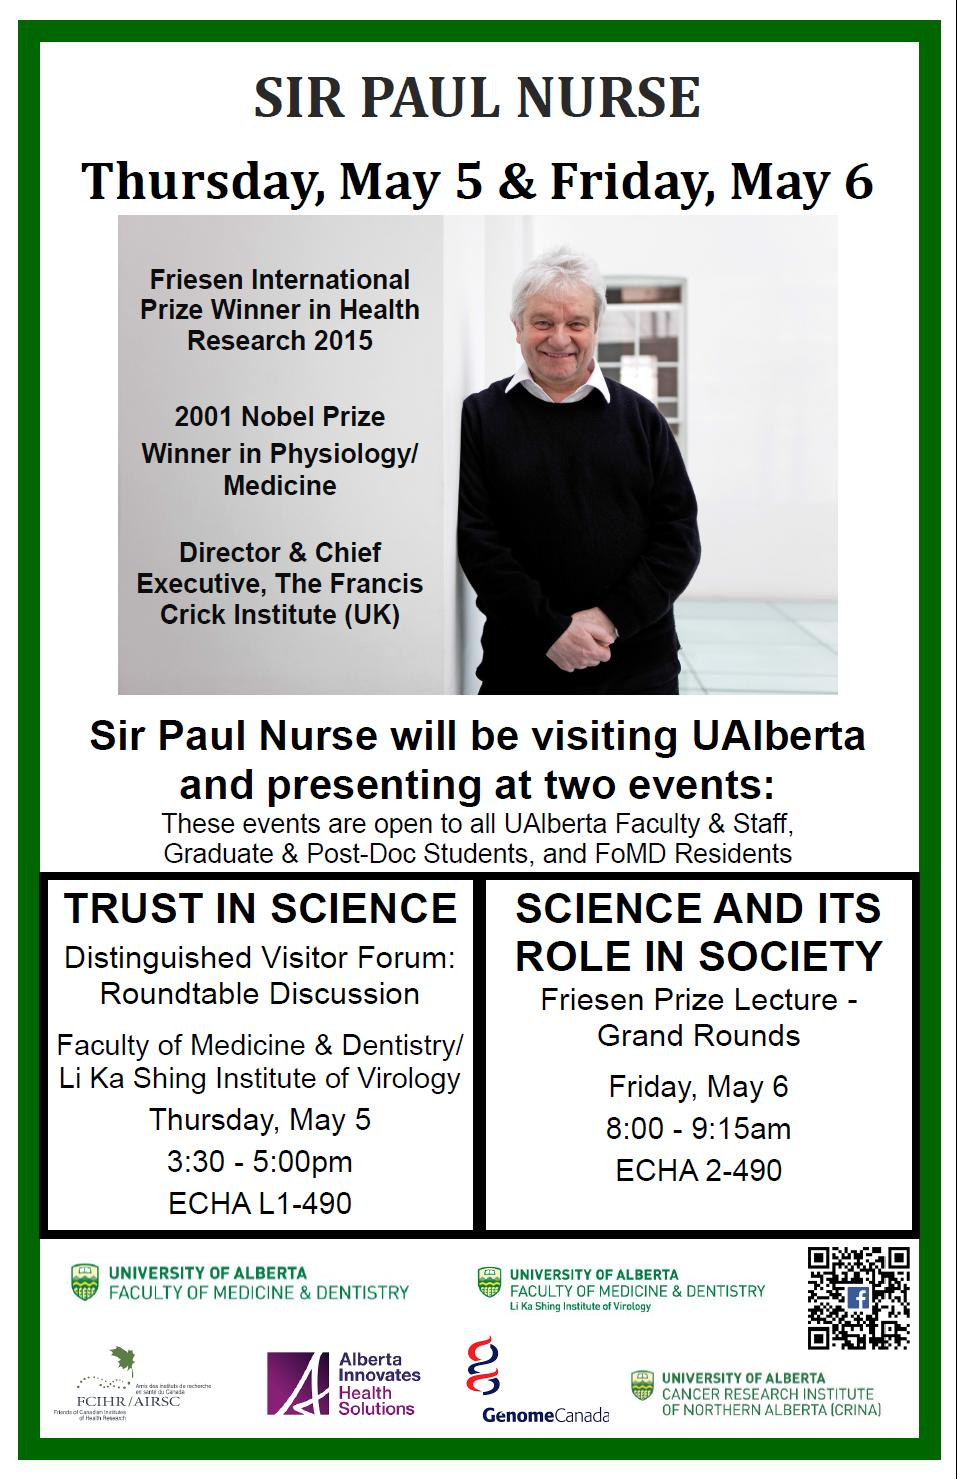 POSTER - U Alberta - via Emily Hoffman - Received on April 20, 2016 - Sir Paul Nurse visit poster